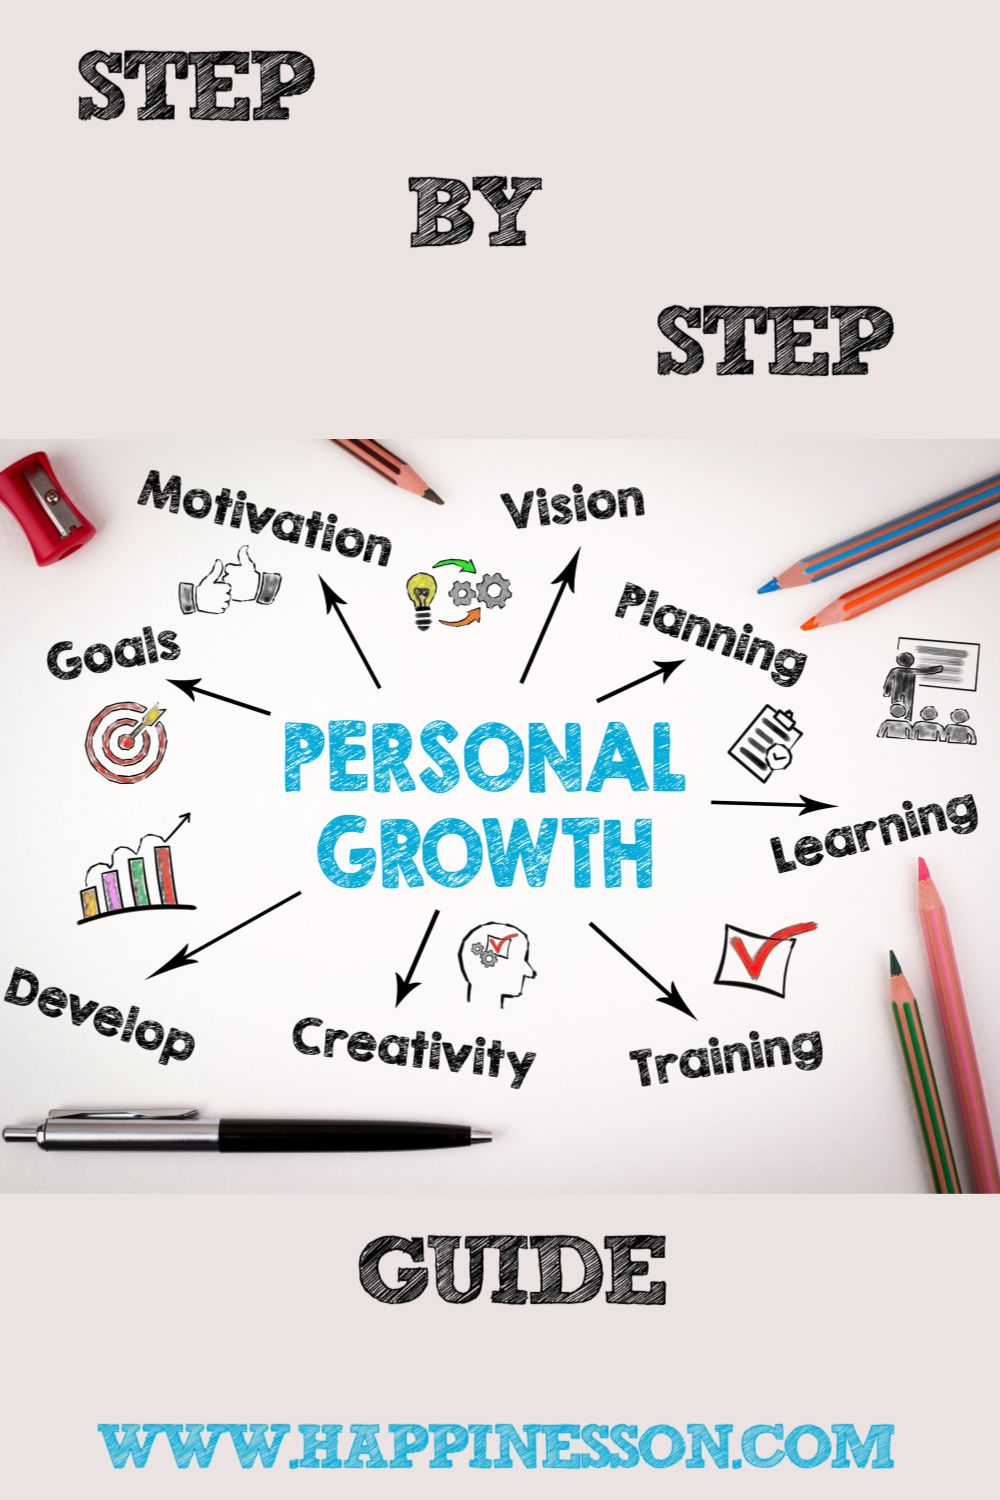 A personal development plan is a tool that will guide your